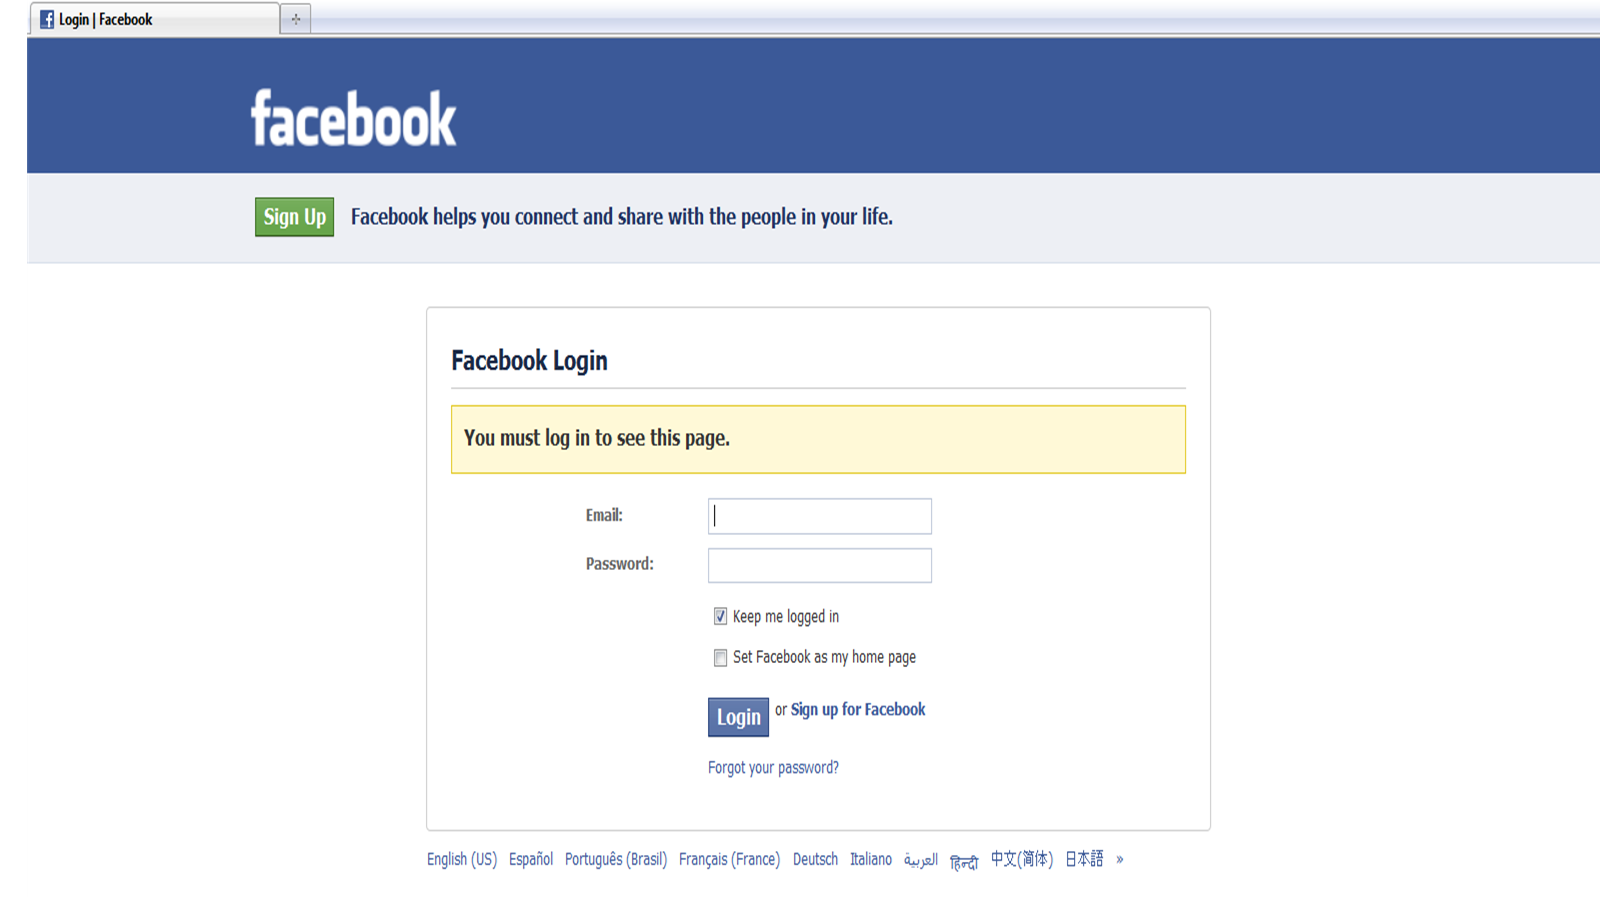 how to find my facebook password without changing it